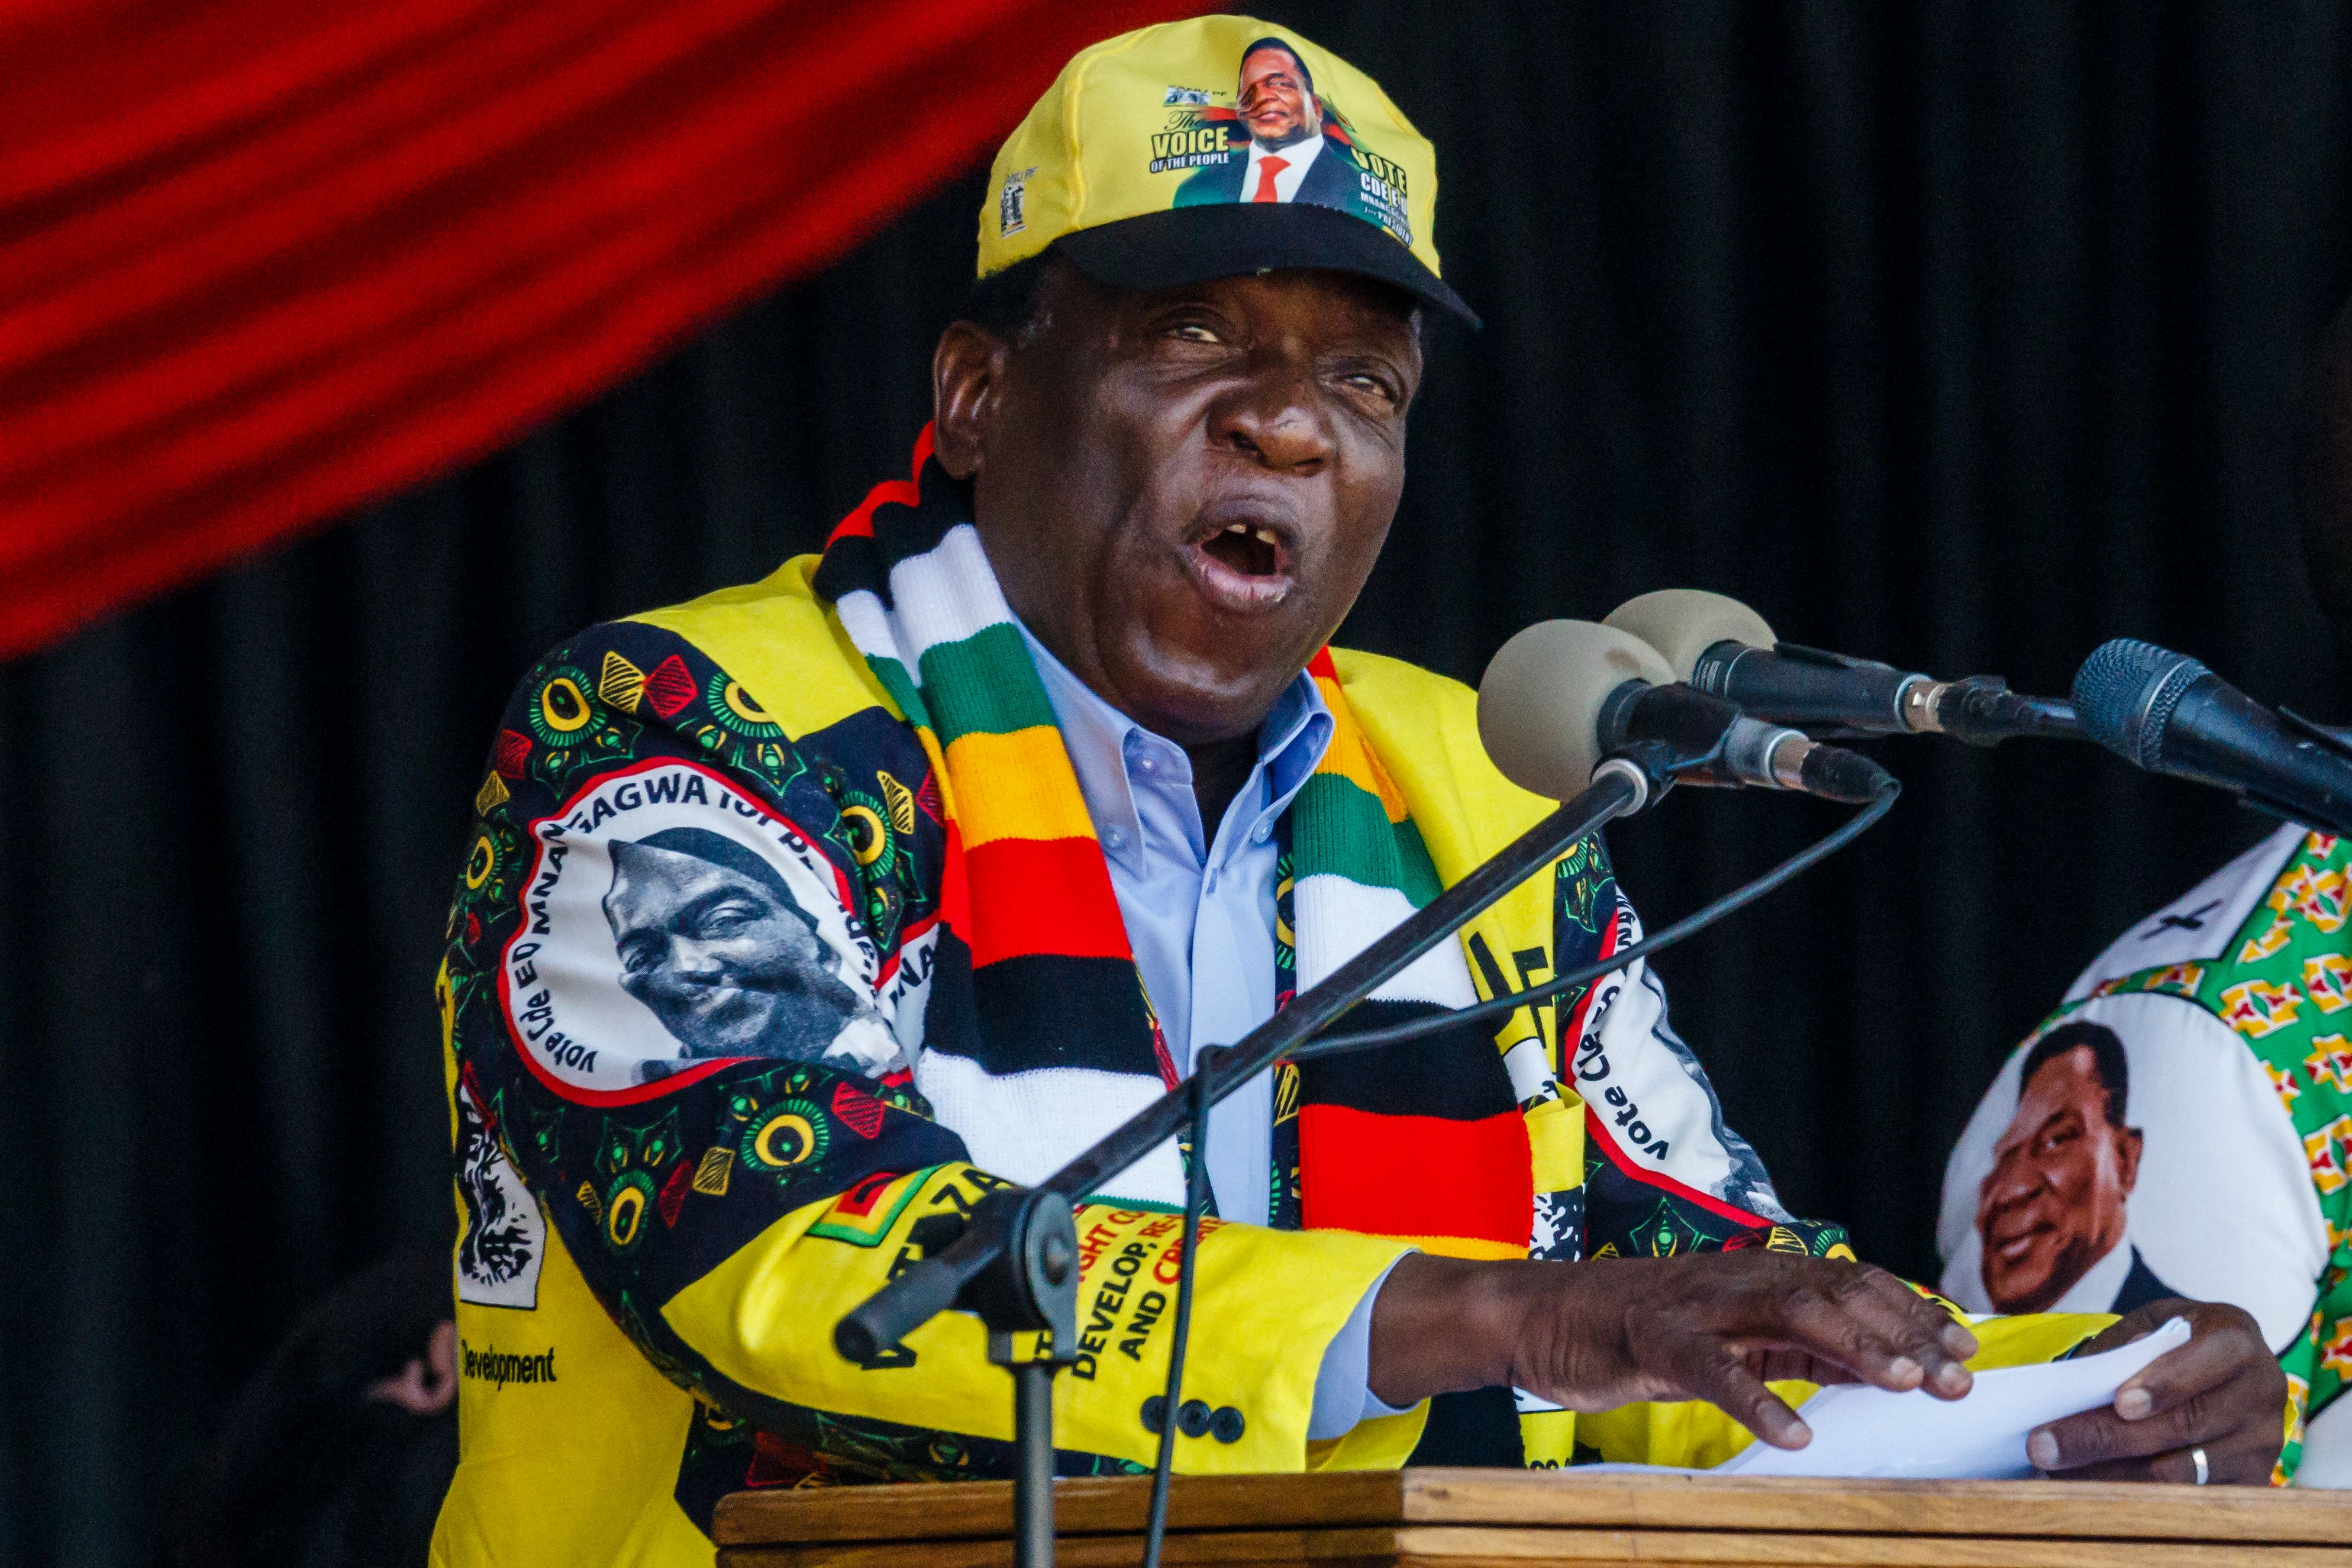 July 28, 2018 - Emmerson Mnangagwa, Zimbabwe's President and presidential candidate for the ZANU PF party, speaks during his last campaign rally at the National Sports Stadium in Harare.